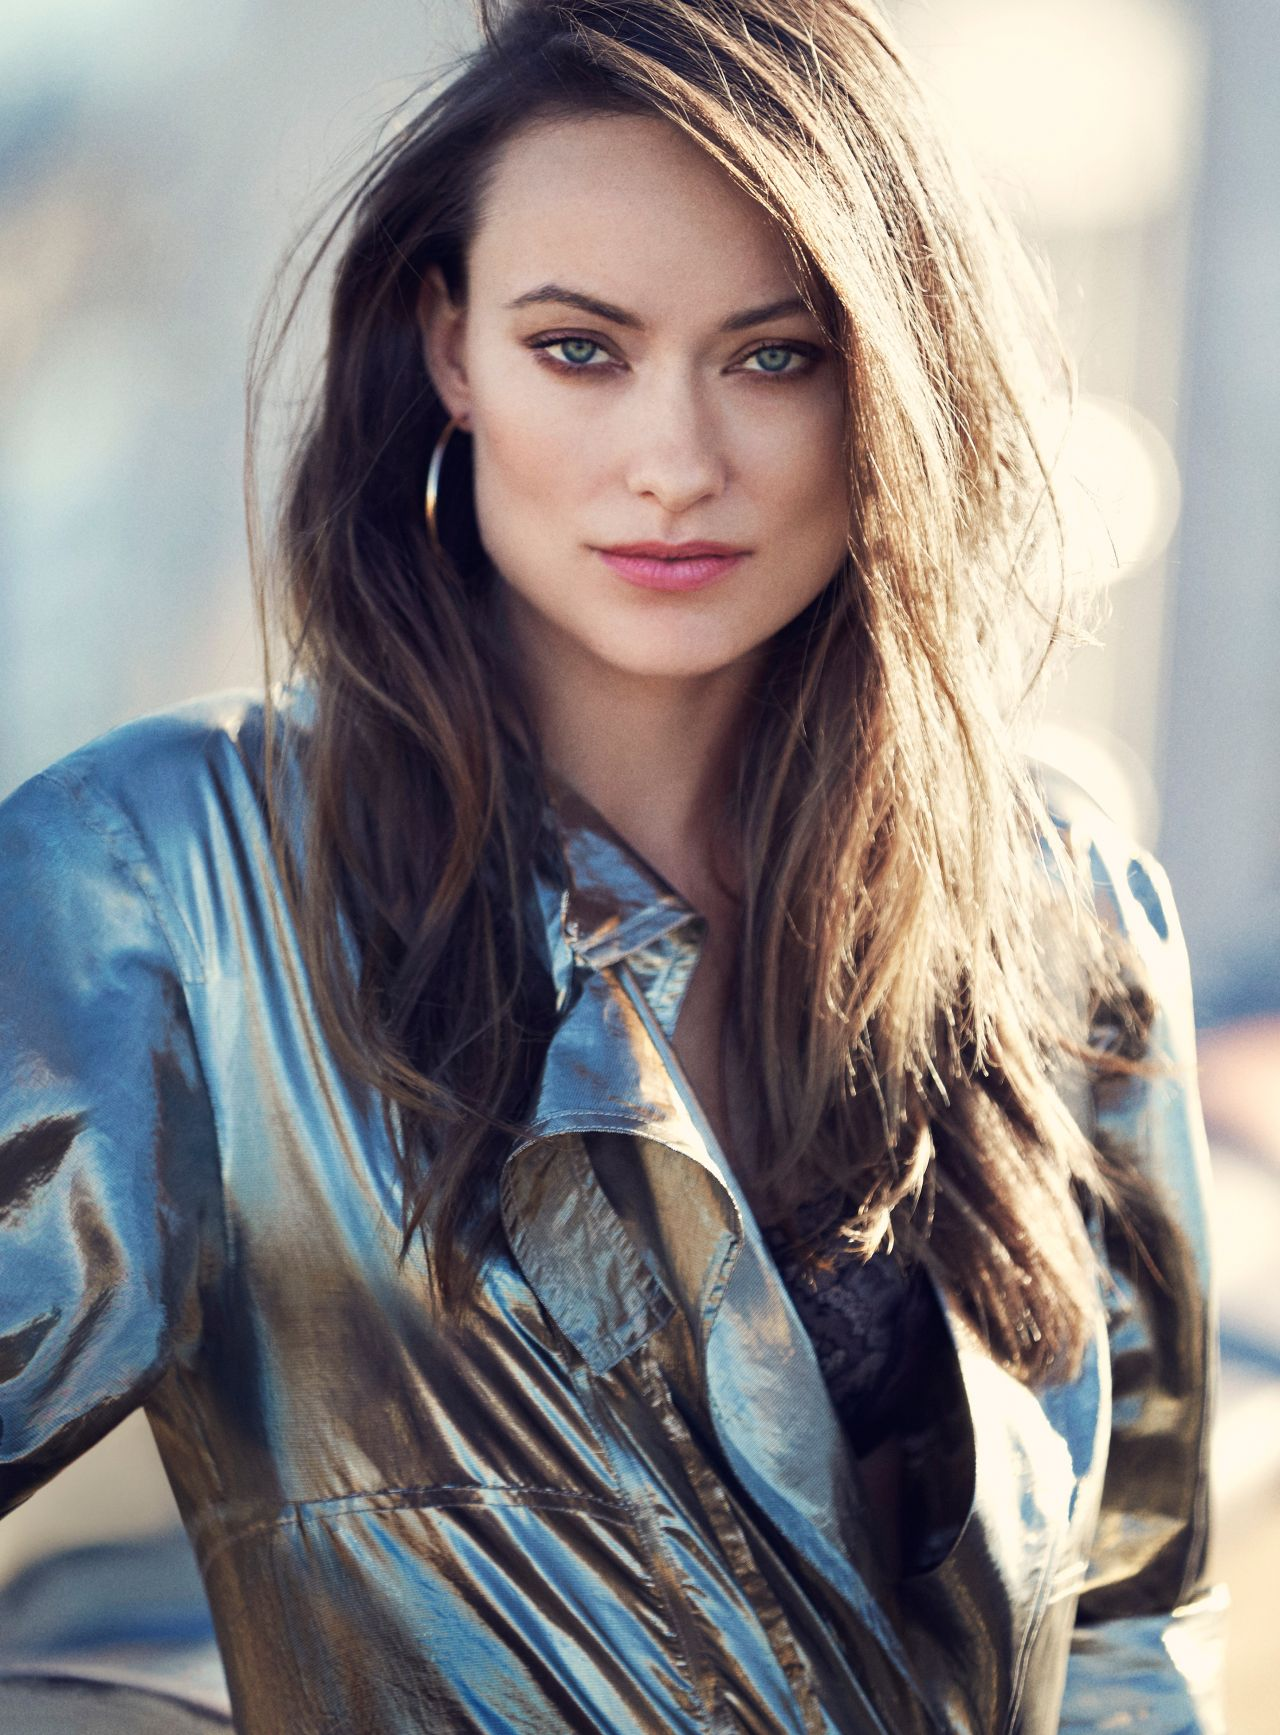 Olivia Wilde Photo Shoot For Elle February 2016